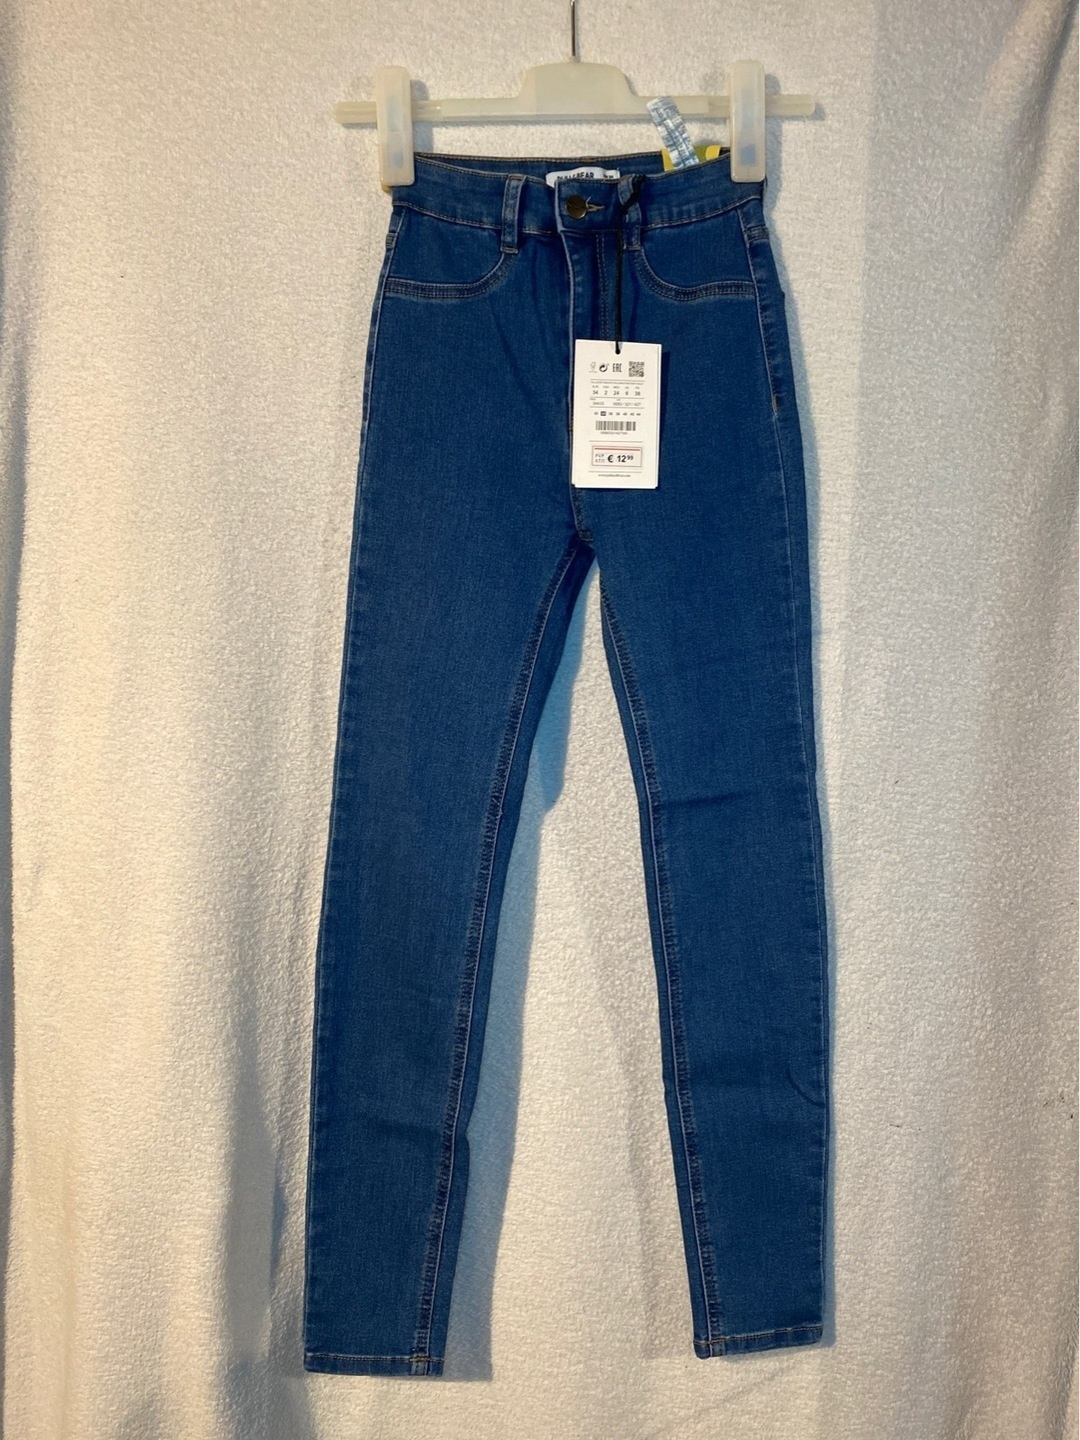 Damers bukser og jeans - PULL&BEAR photo 1